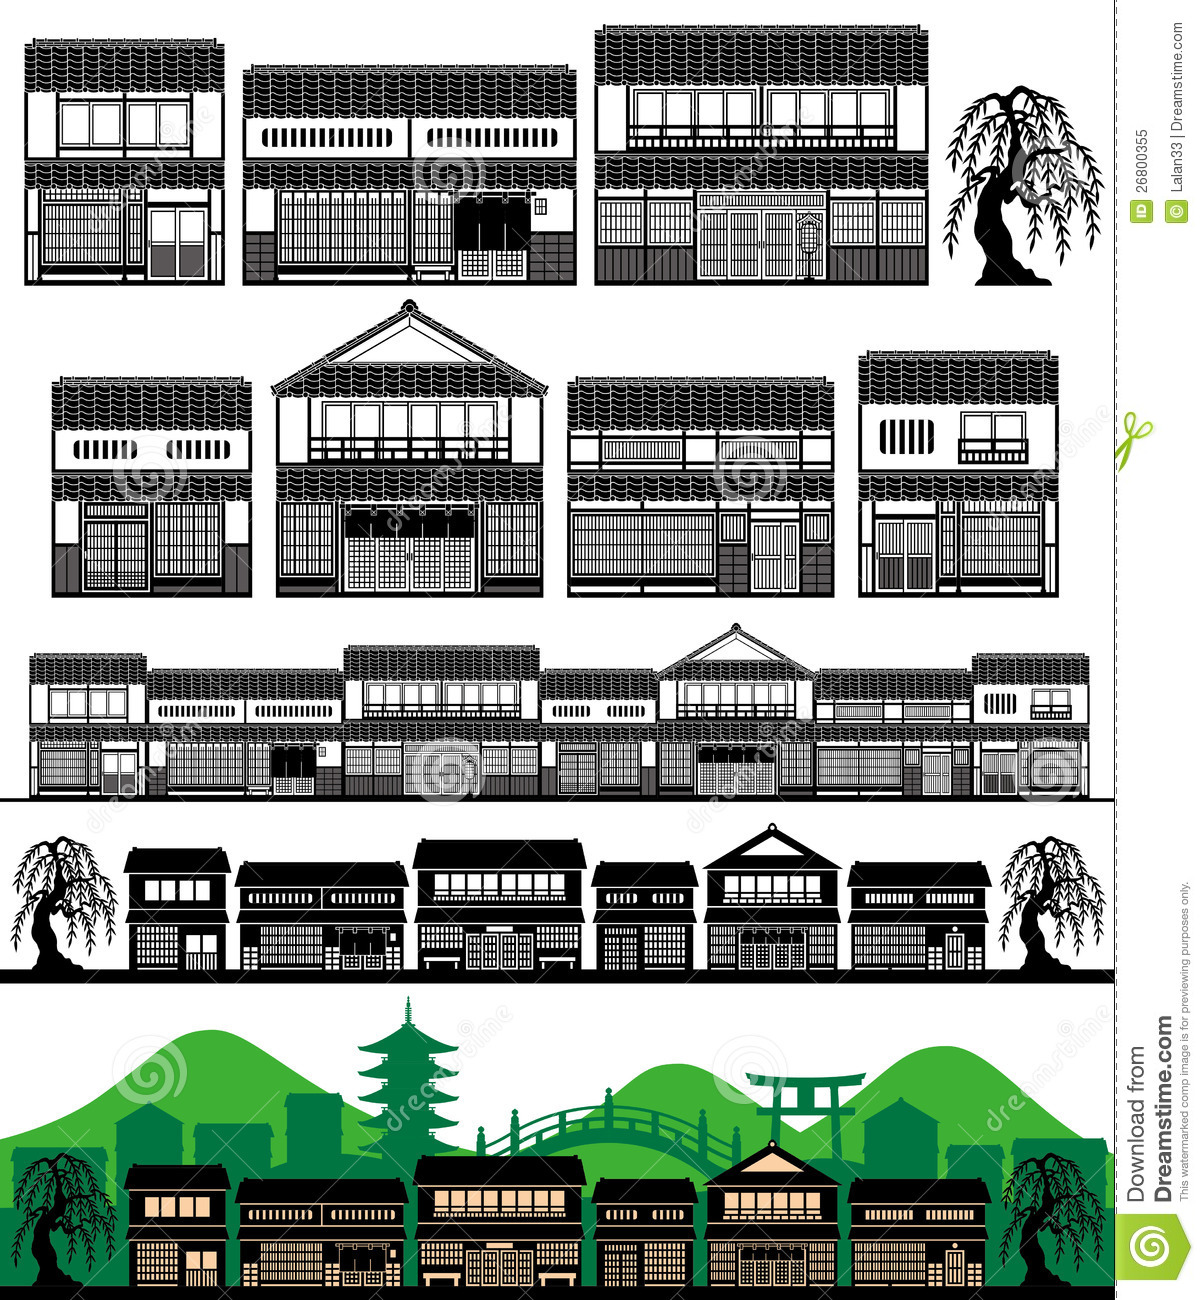 Japan traditional house clipart clip art royalty free library Japanese Traditional Houses Royalty Free Stock Photo - Image: 26800355 clip art royalty free library